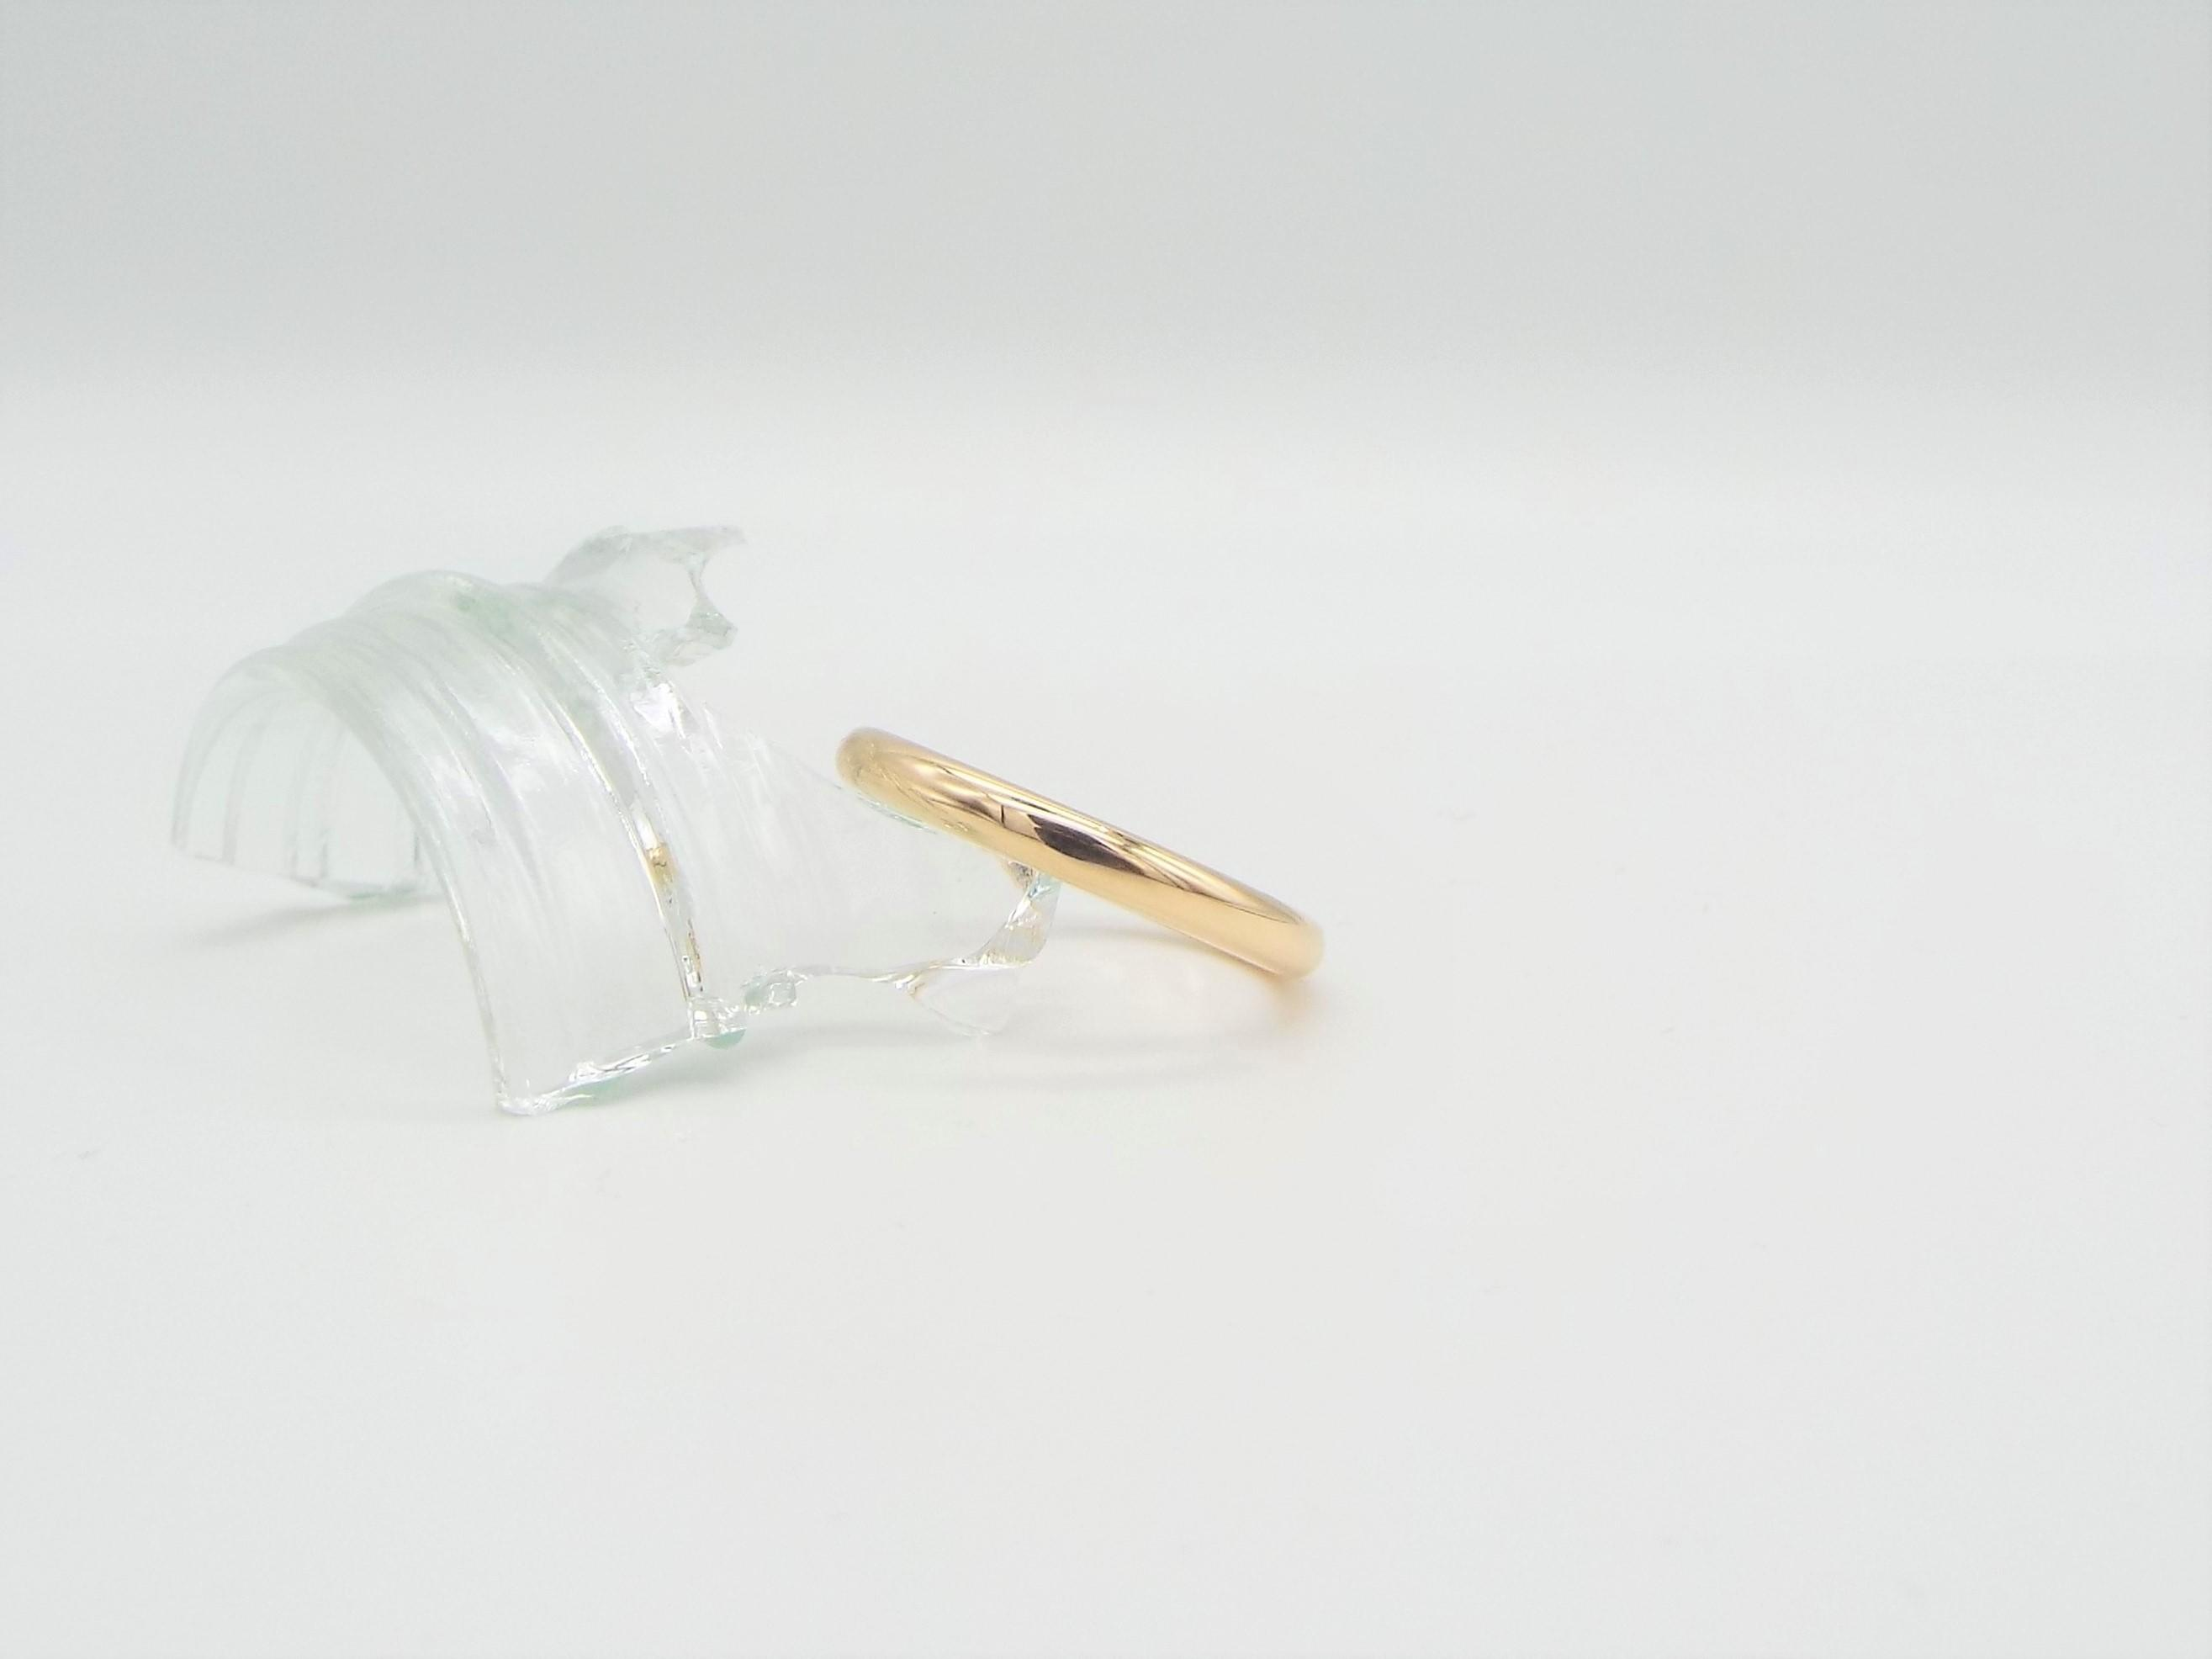 9ct D shaped wedding ring